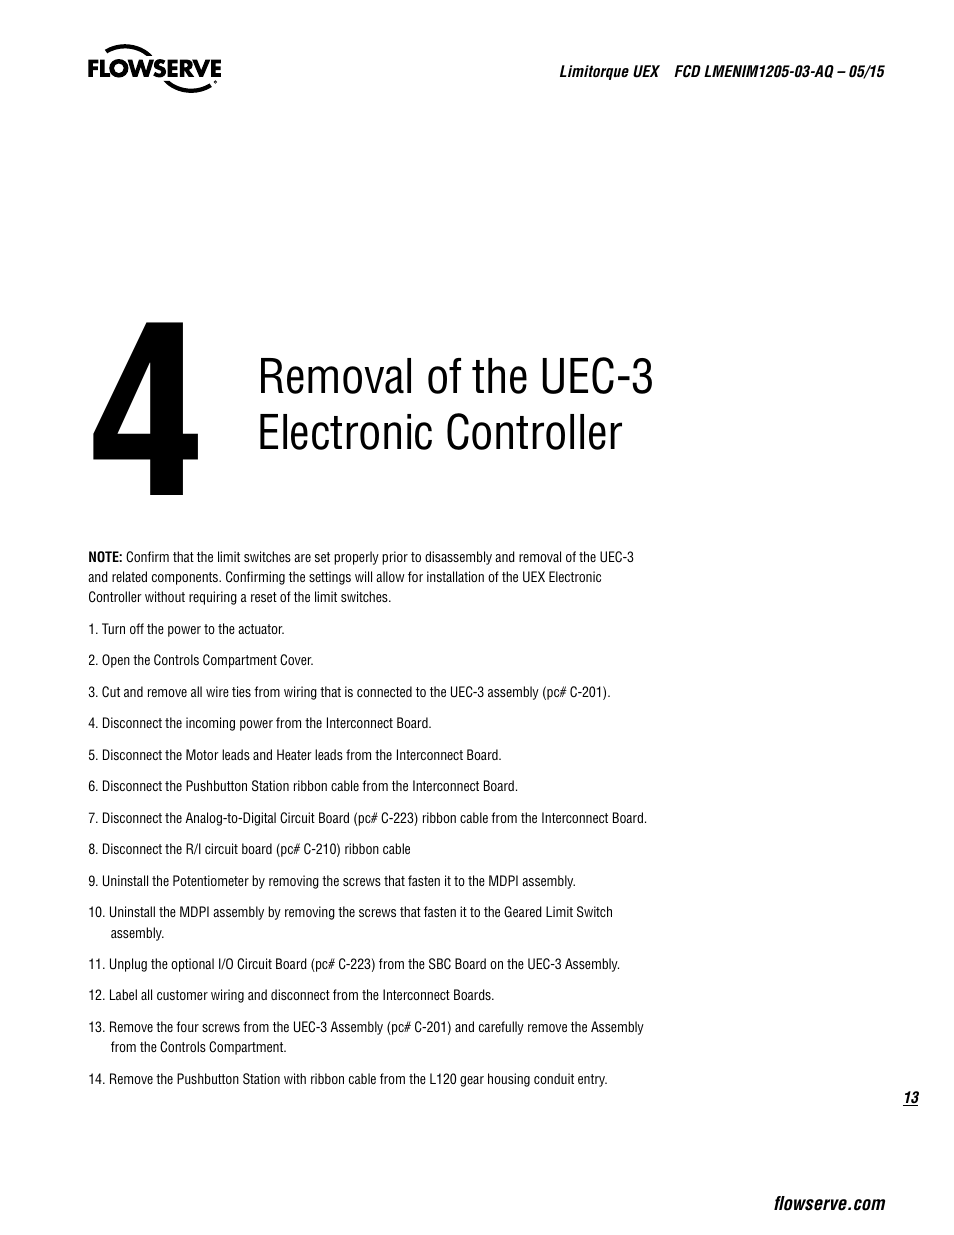 Removal Of The Uec 3 Electronic Controller Flowserve Uex Limitorque L120 Wiring Schematic User Manual Page 13 56